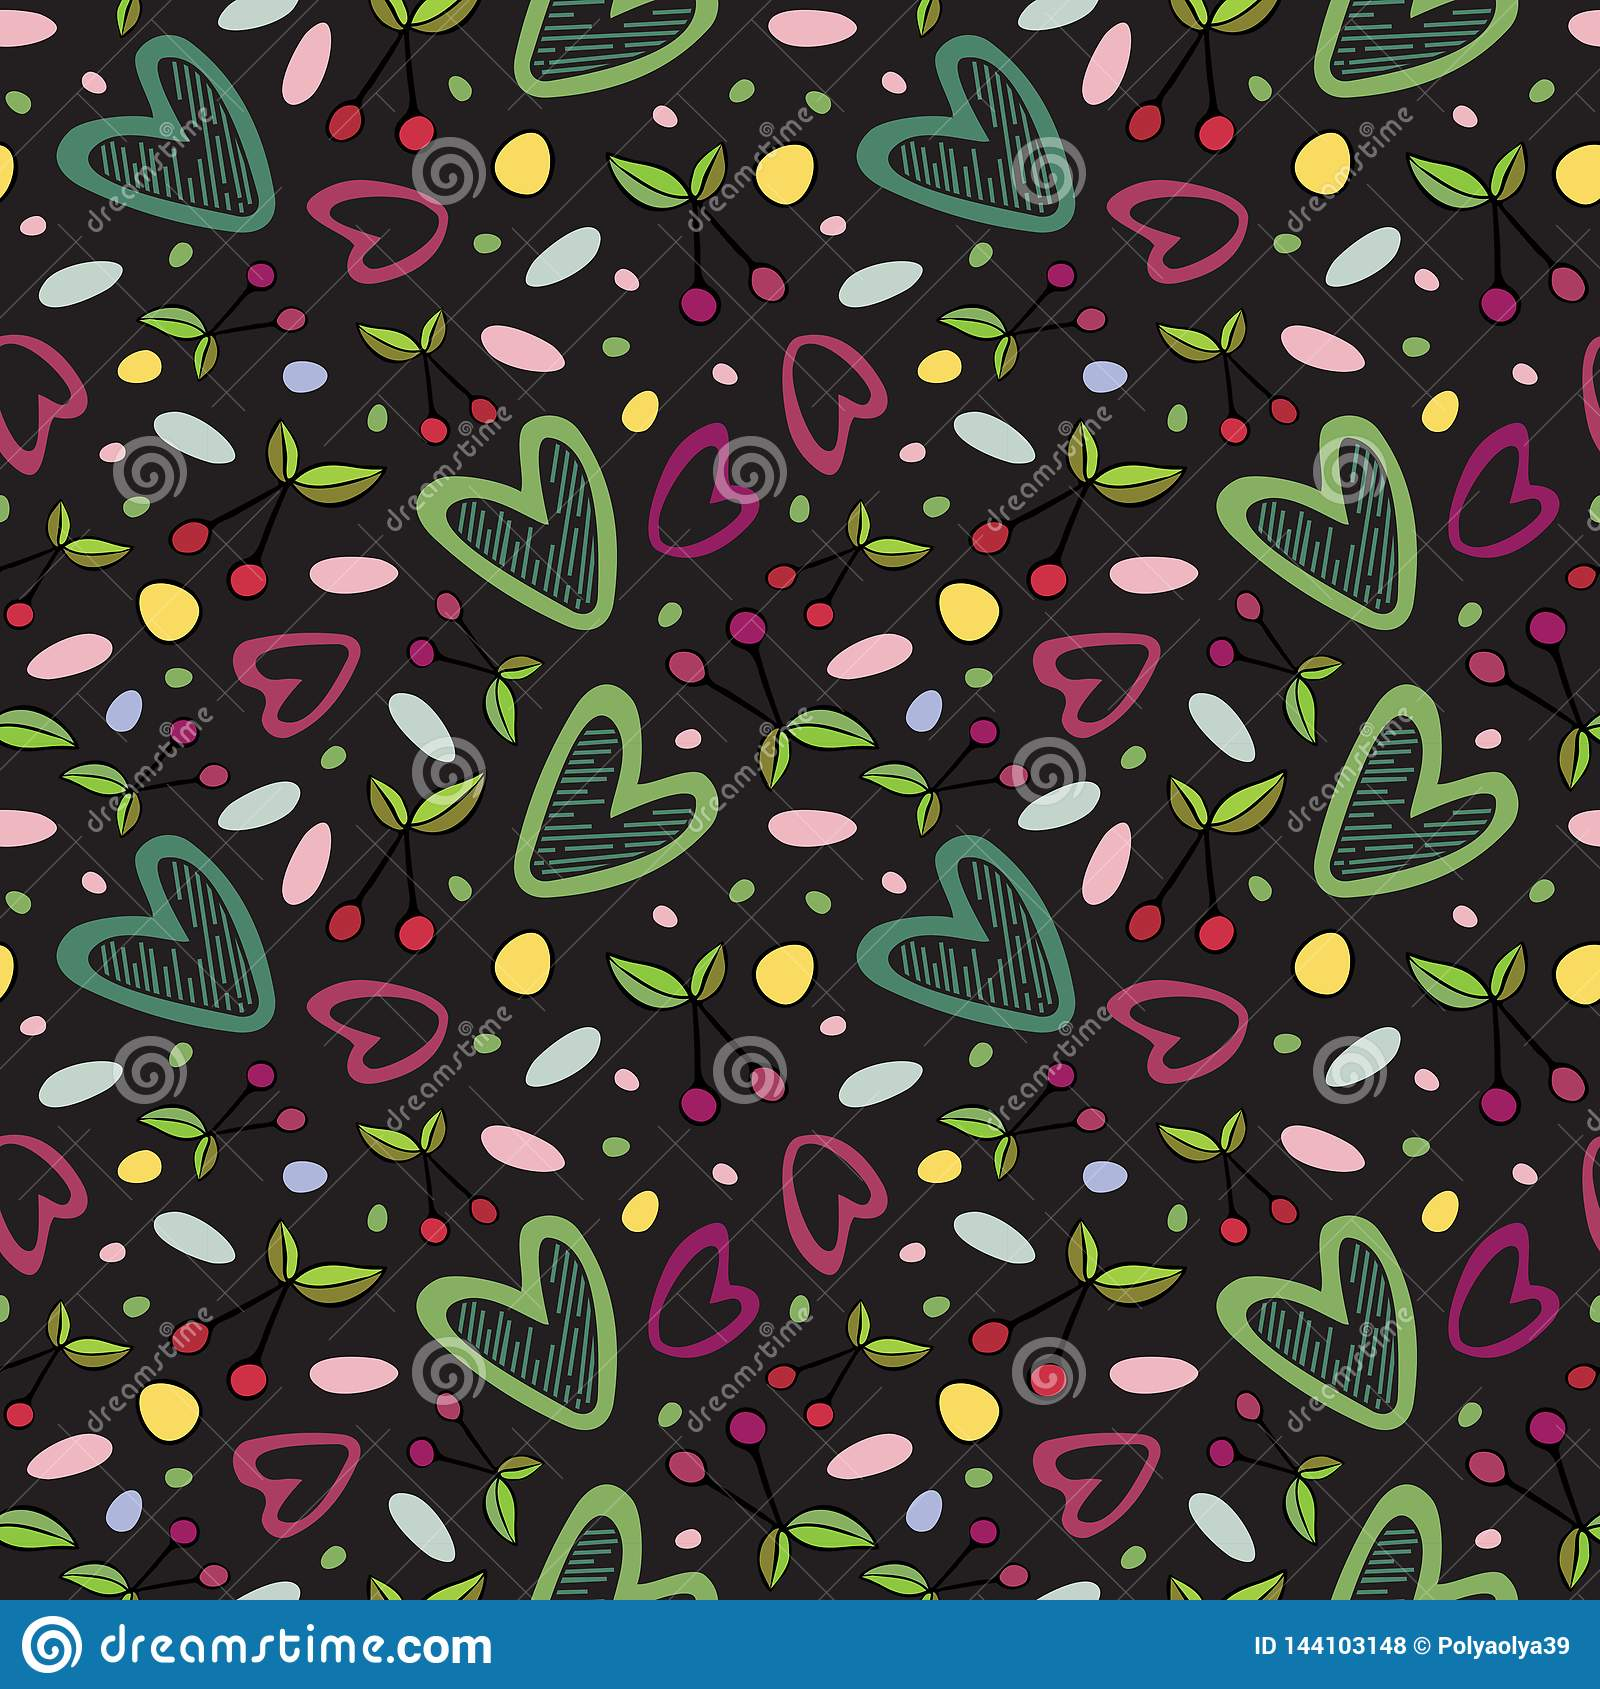 Seamless pattern with cherry and heart romantic elements on the dark background.